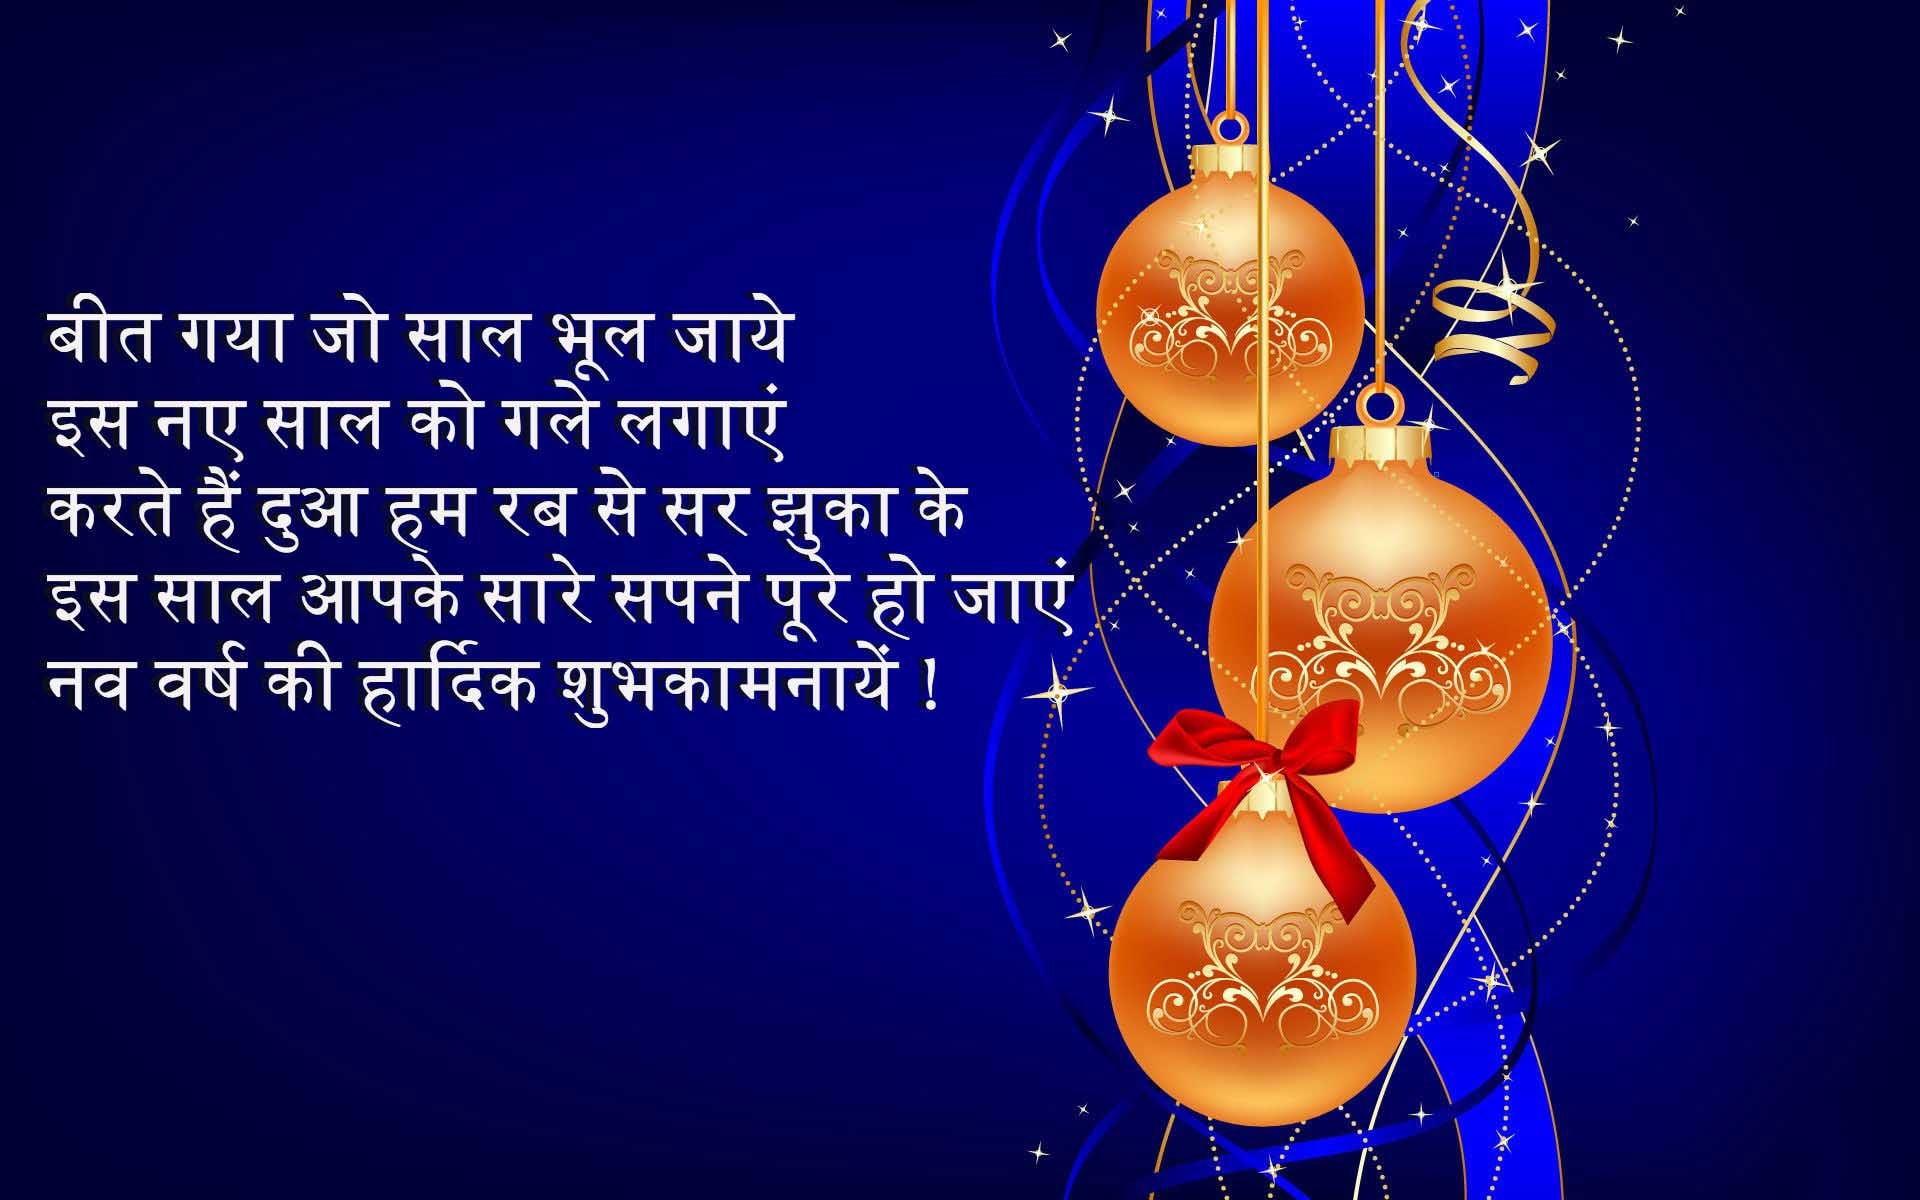 new year images with quotes in hindi